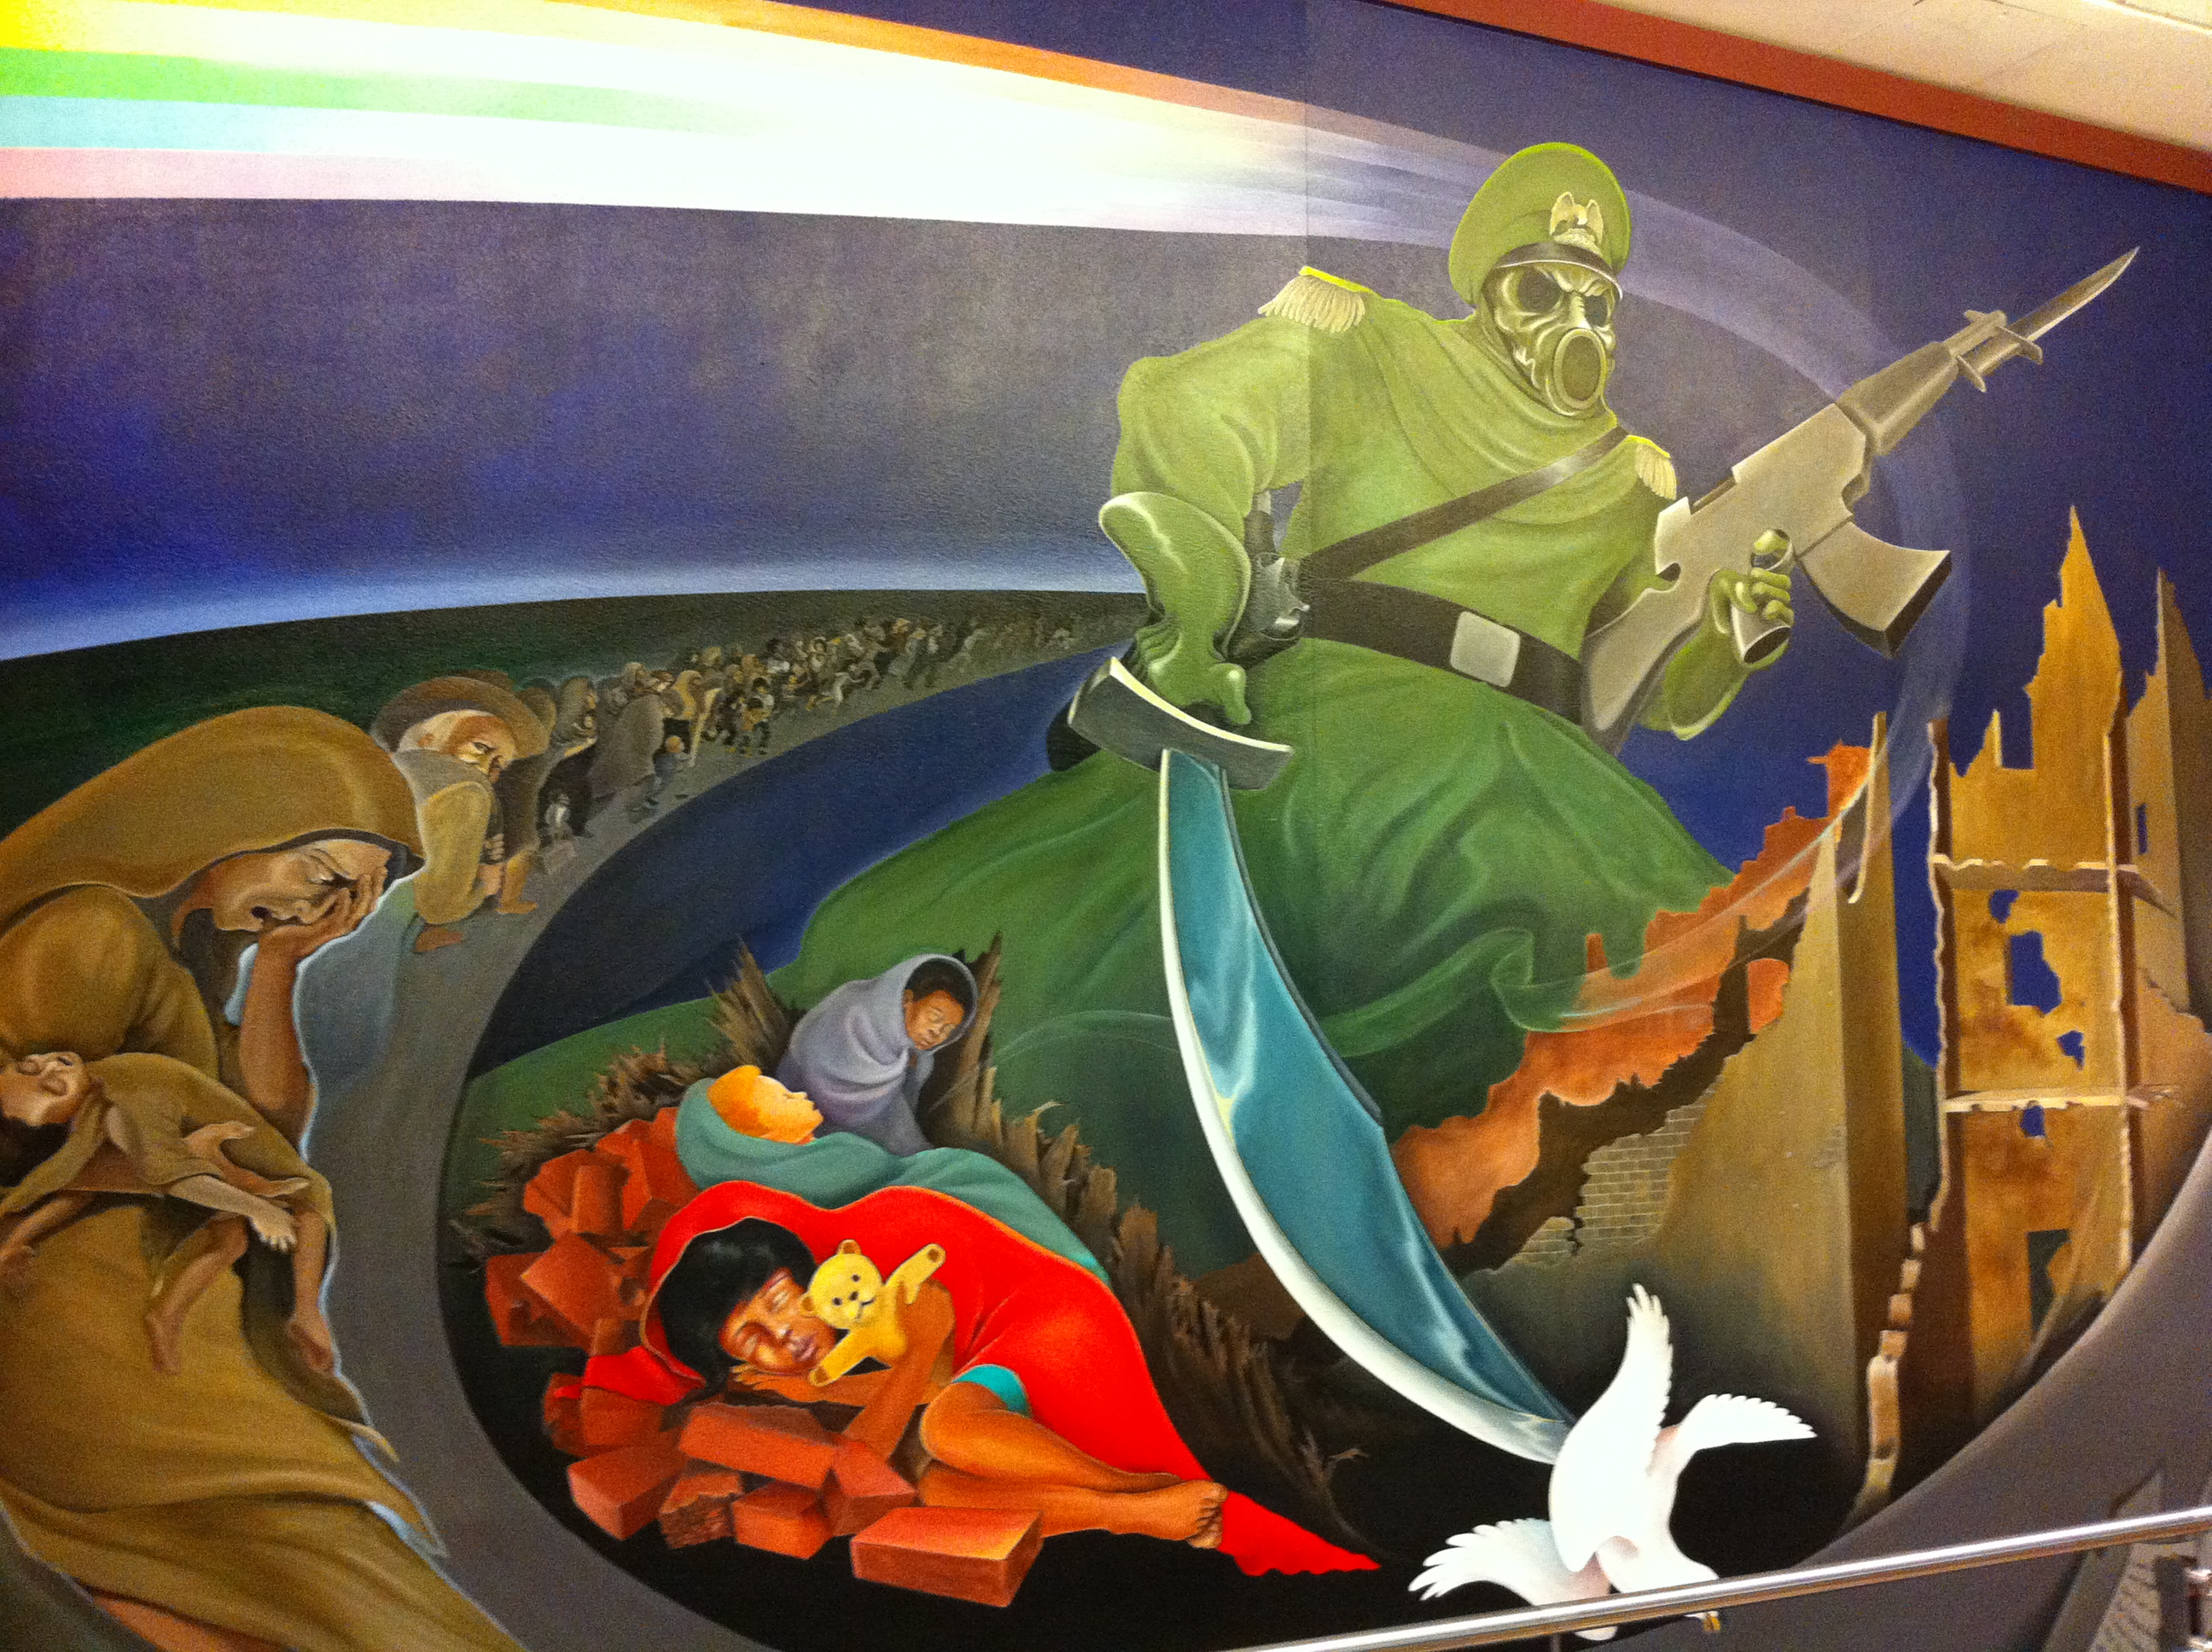 Behind the denver airport conspiracies the flight blog for Denver airport mural conspiracy